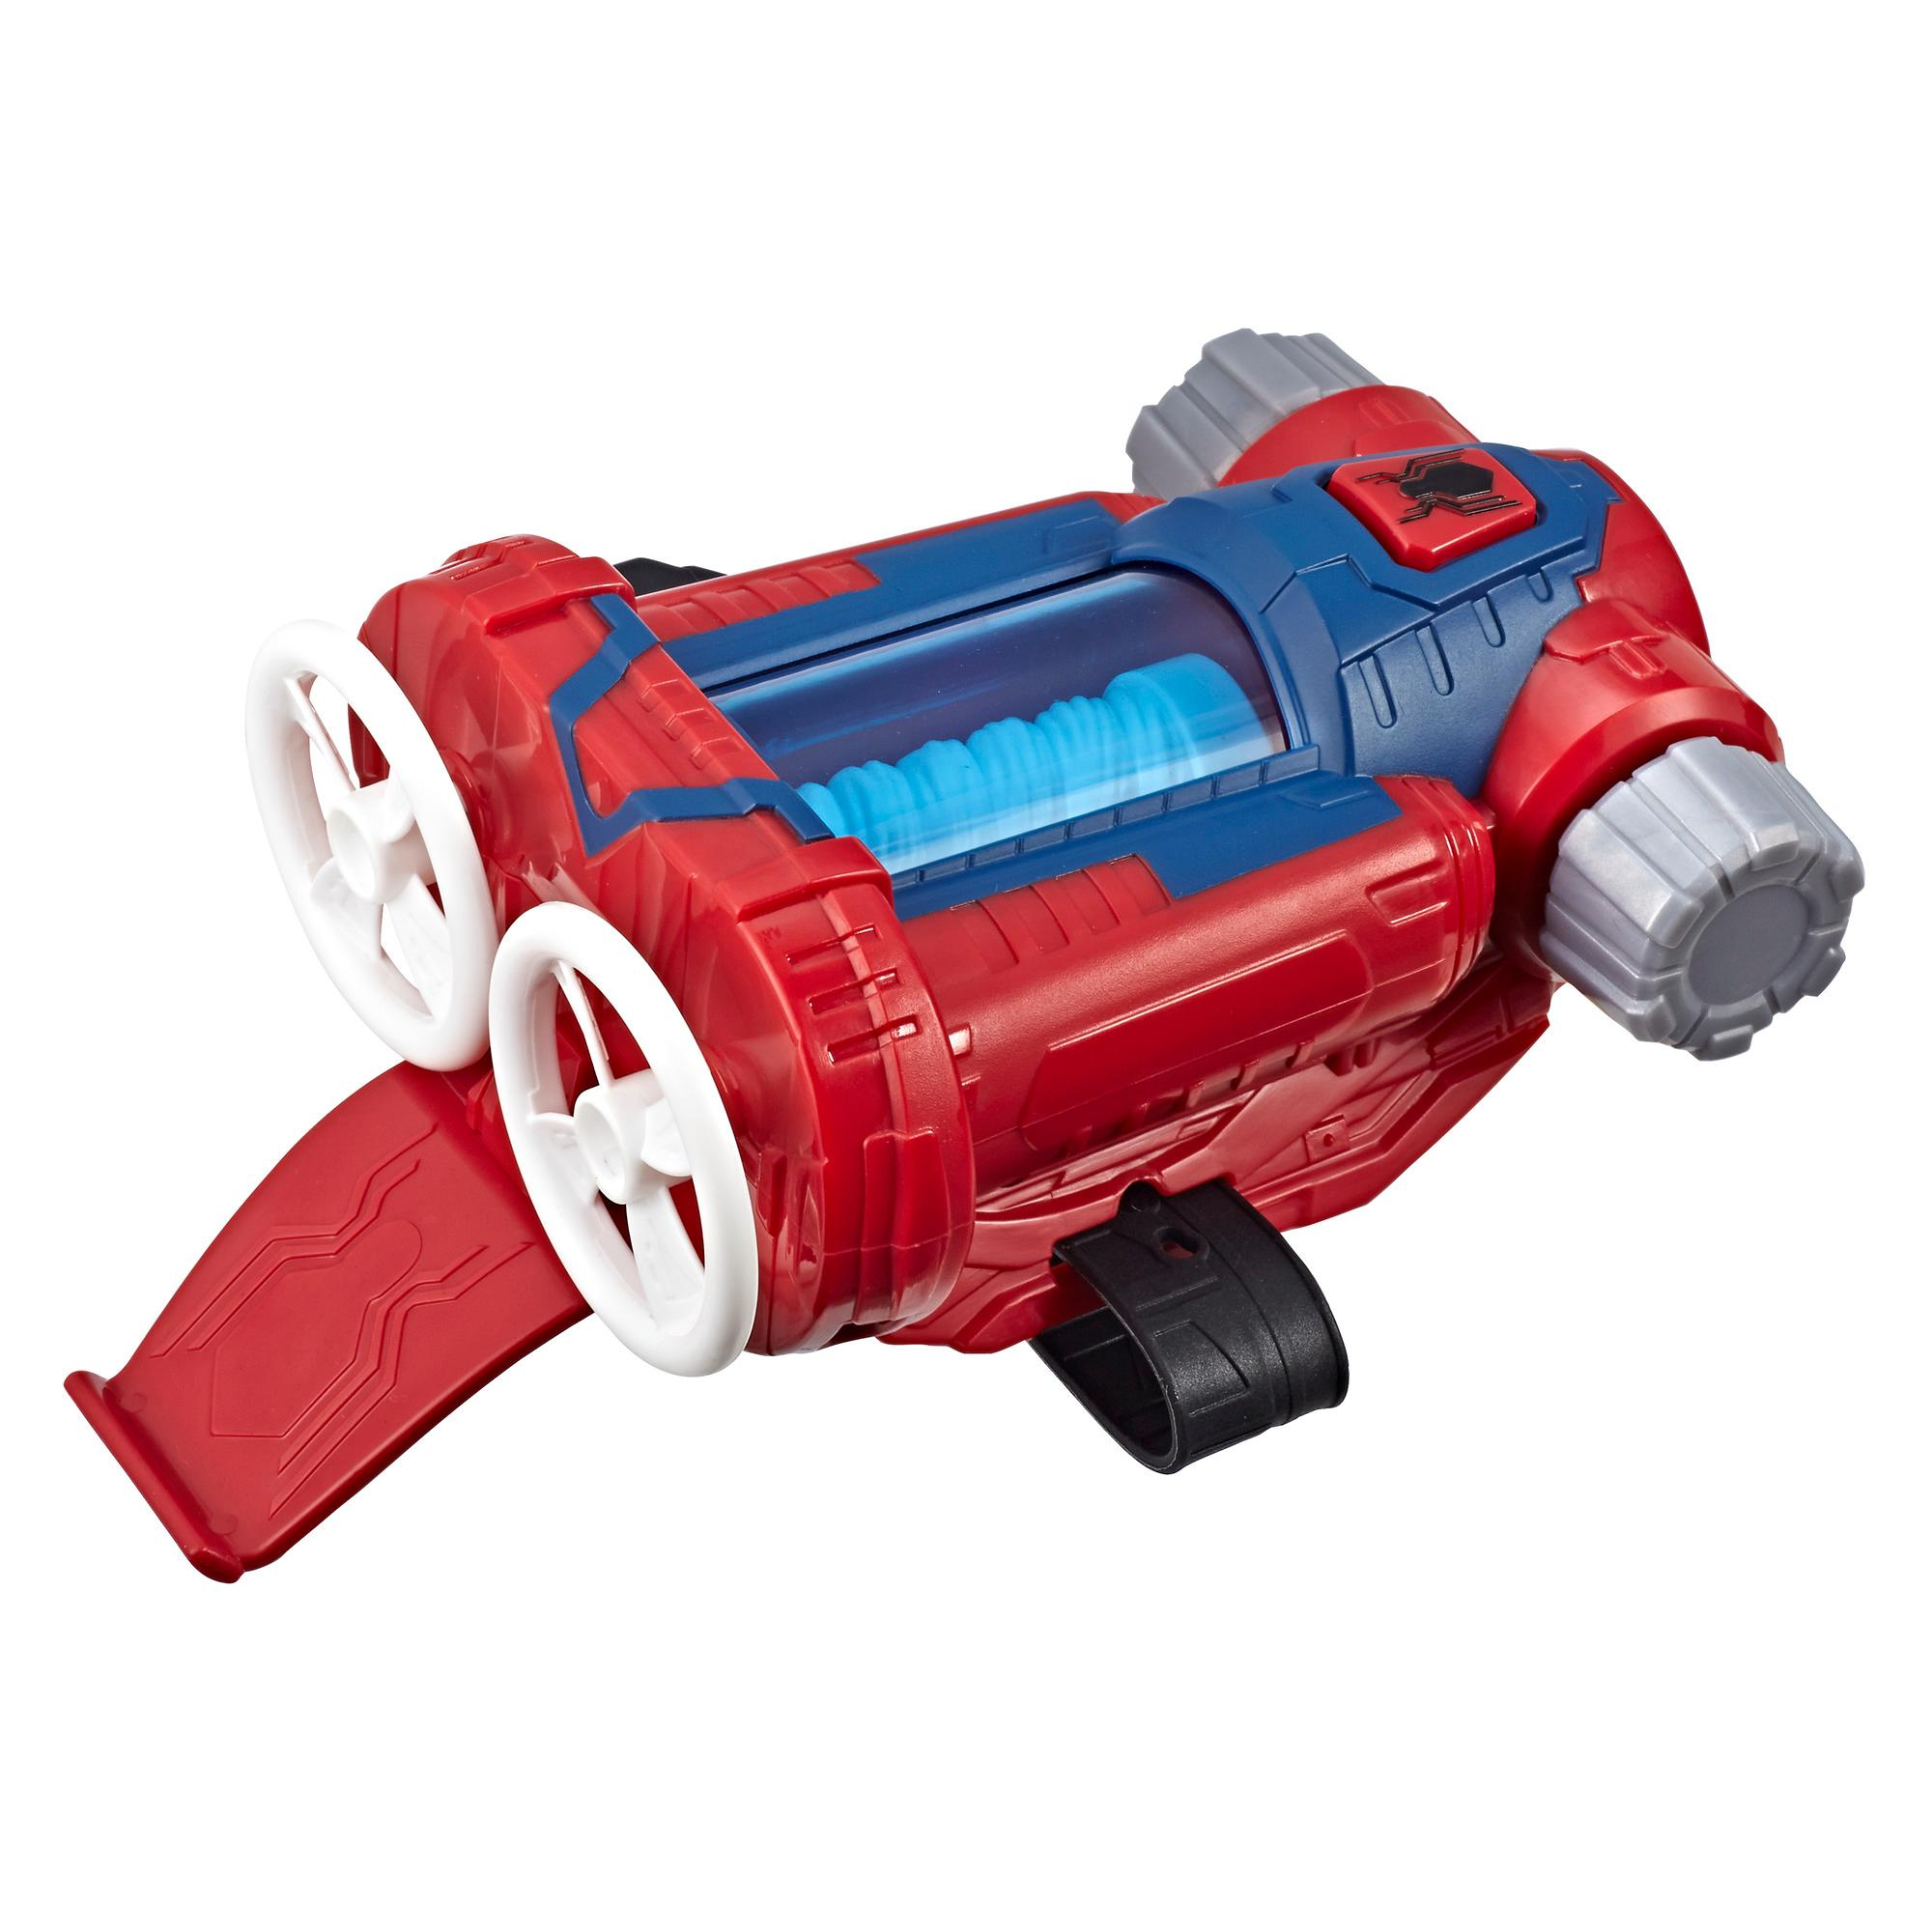 Spider-Man Web Shots Twist Strike Blaster Toy for Kids Ages 5 and Up